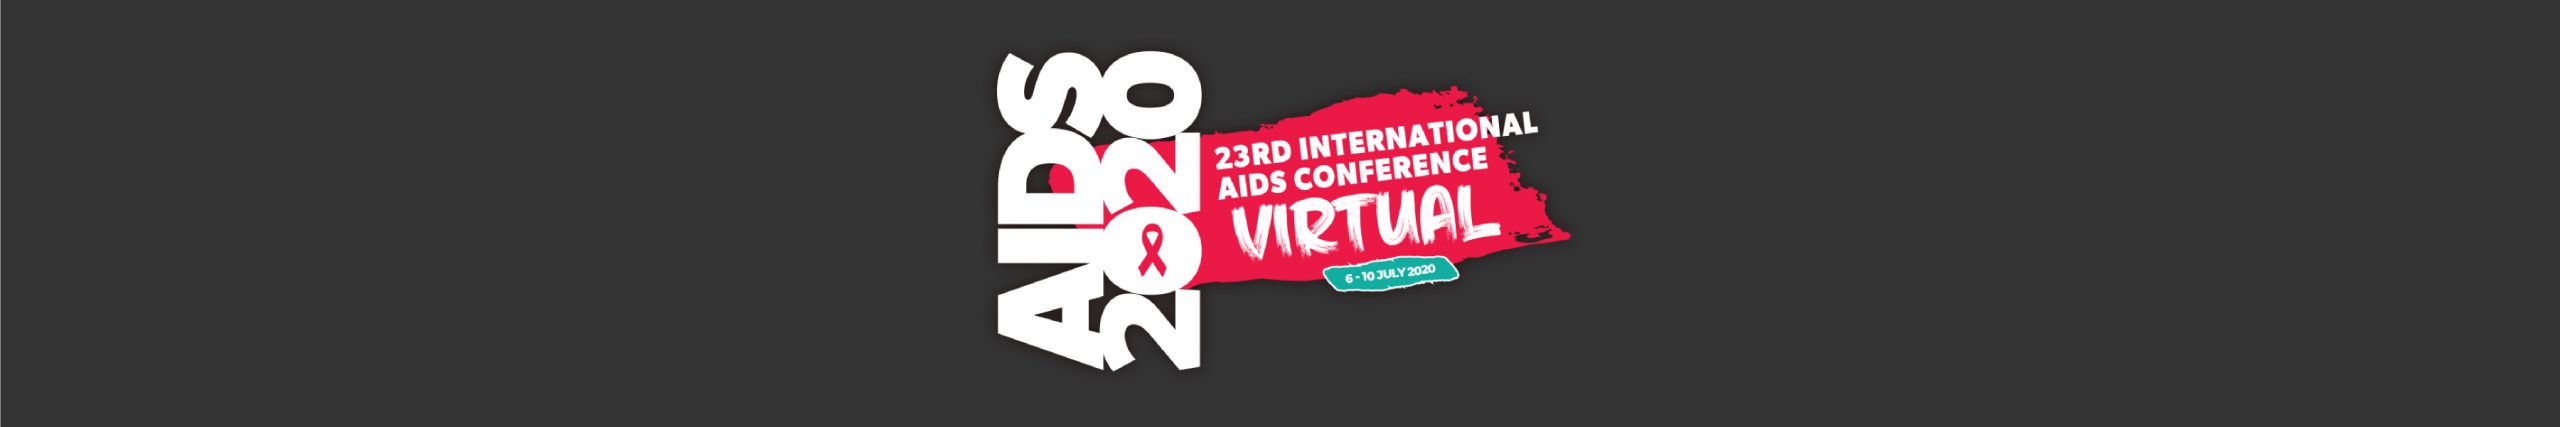 AIDS 2020 Virtual Conference Begins This Week